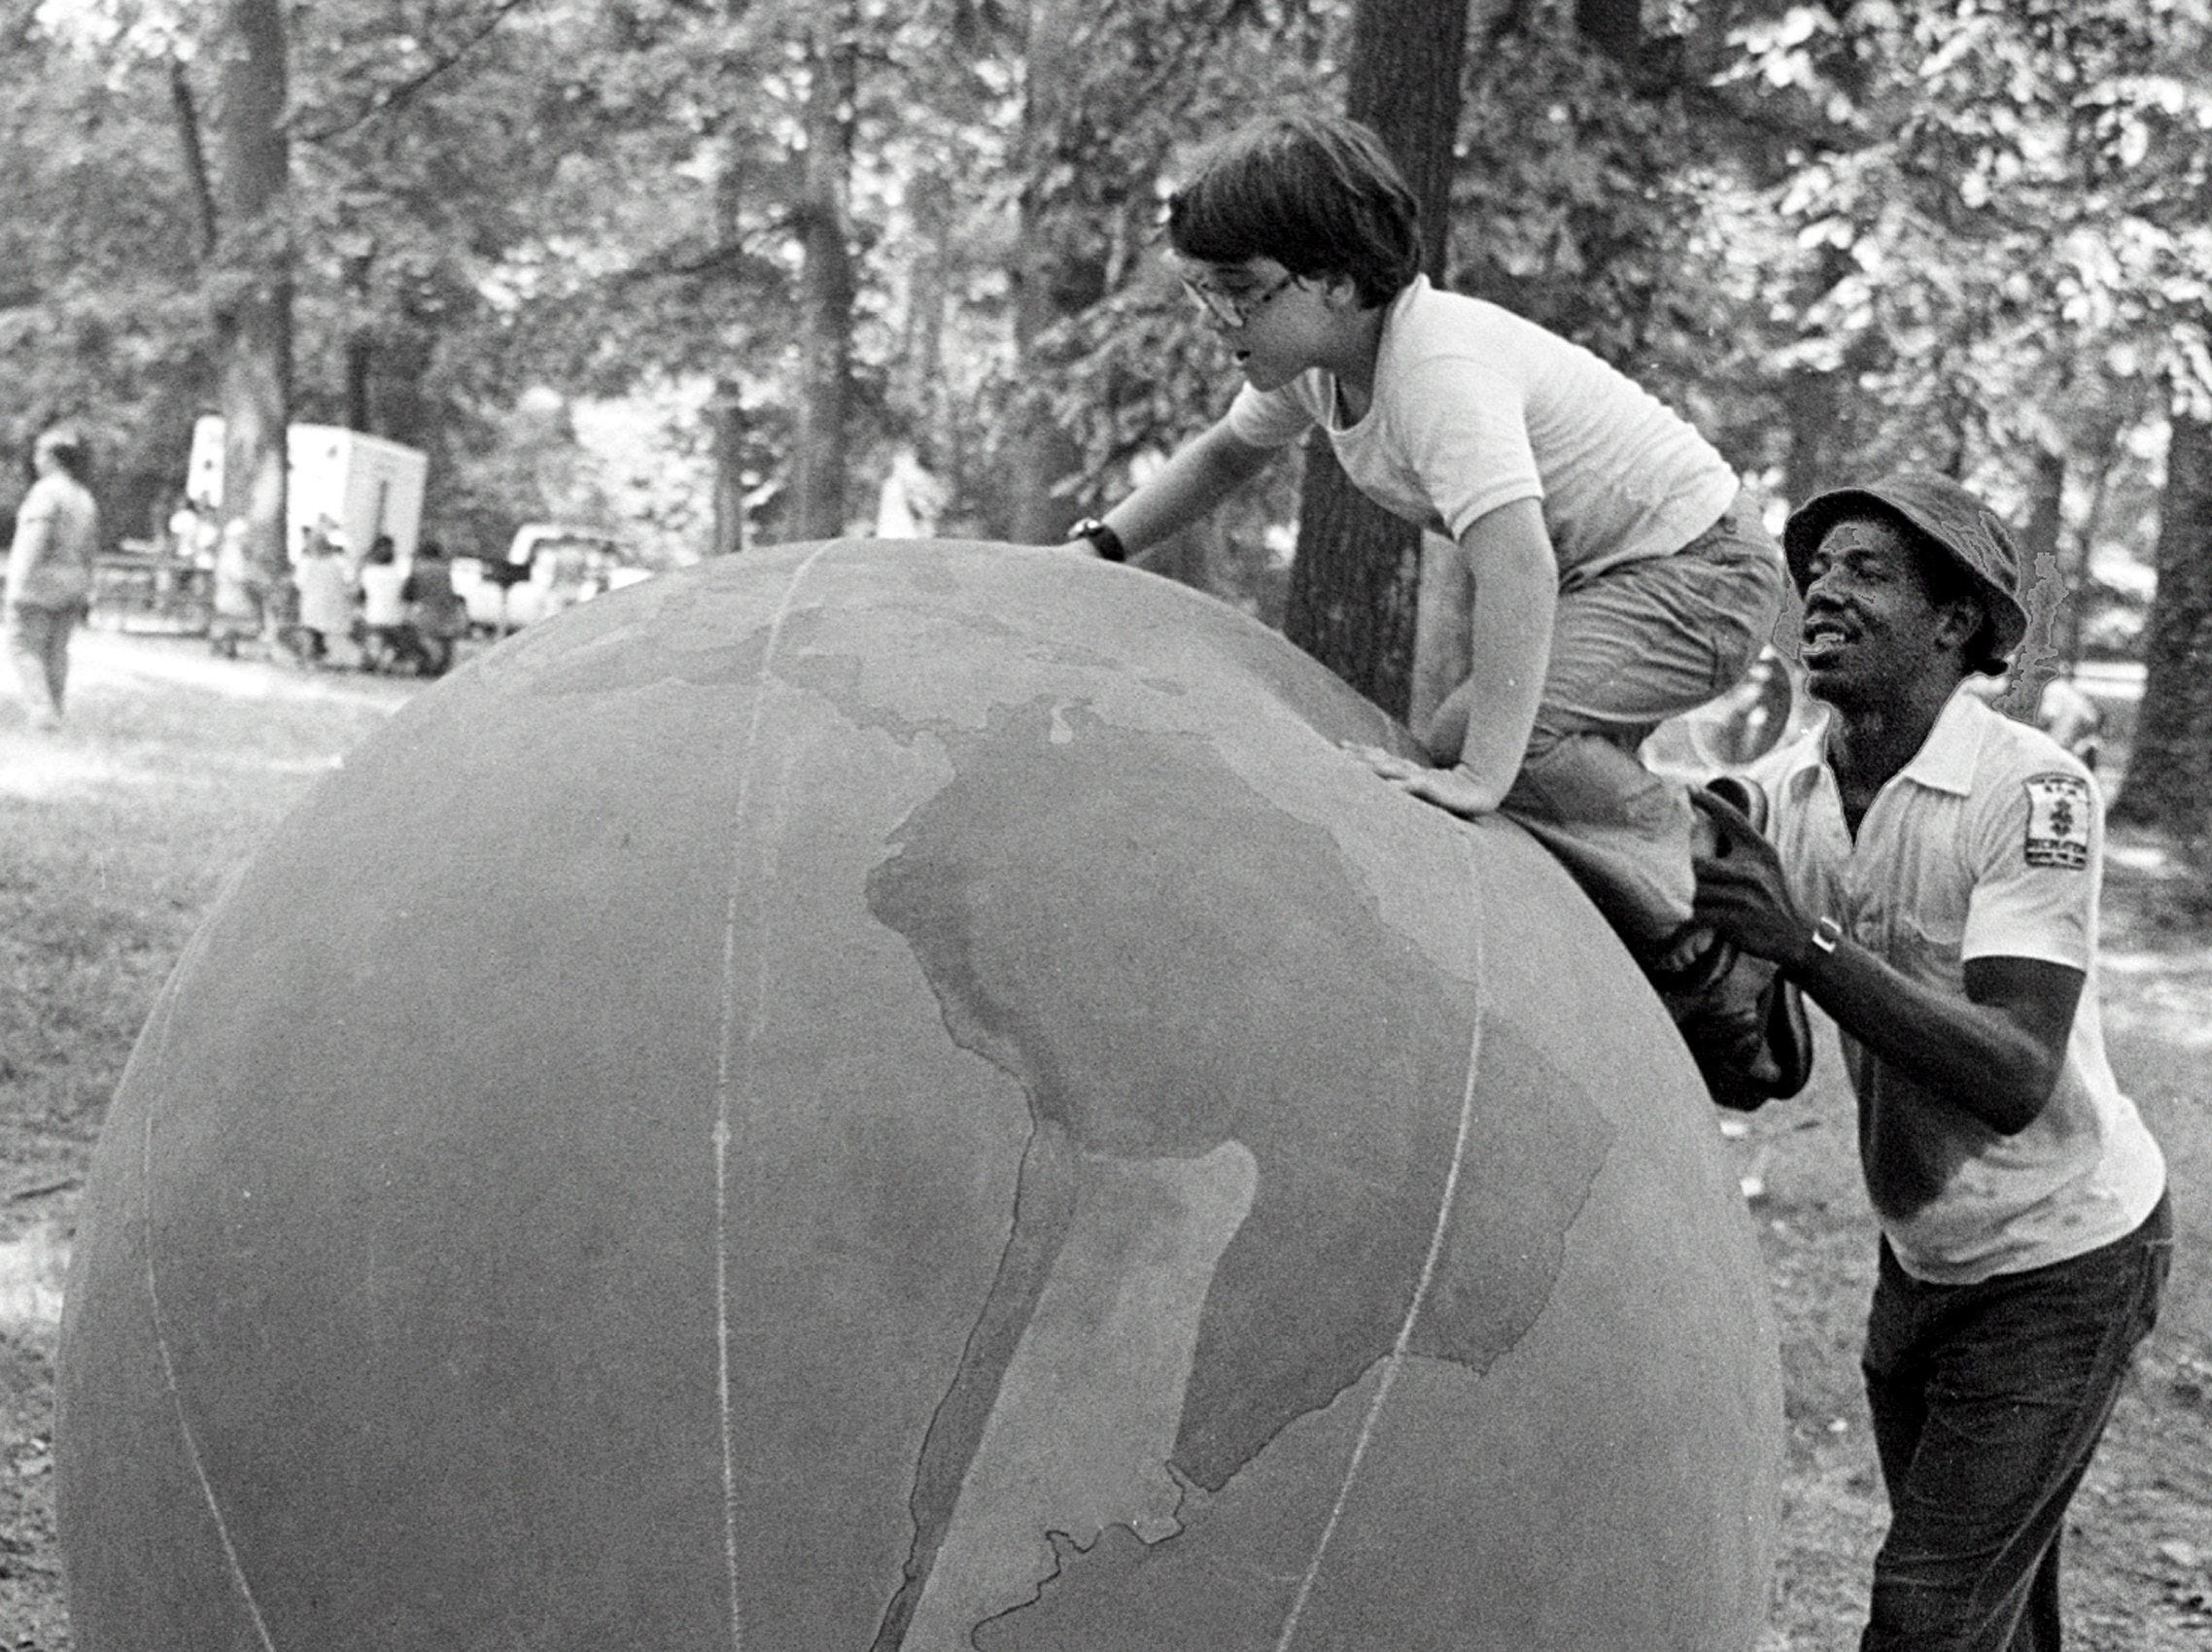 Ten-year-old Yvette Golden of the Baptist Children's Home got a boost to the top of an earth ball from Park Commission staff member Randy Jones at the Overton Park picnic area on 8 Aug 1979.  The Park Commission provided games, puppet shows and other activities yesterday for about 200 youngsters from orphanages in the Memphis area during the 18th annual Orphans Picnic, sponsored by the Jaycees.